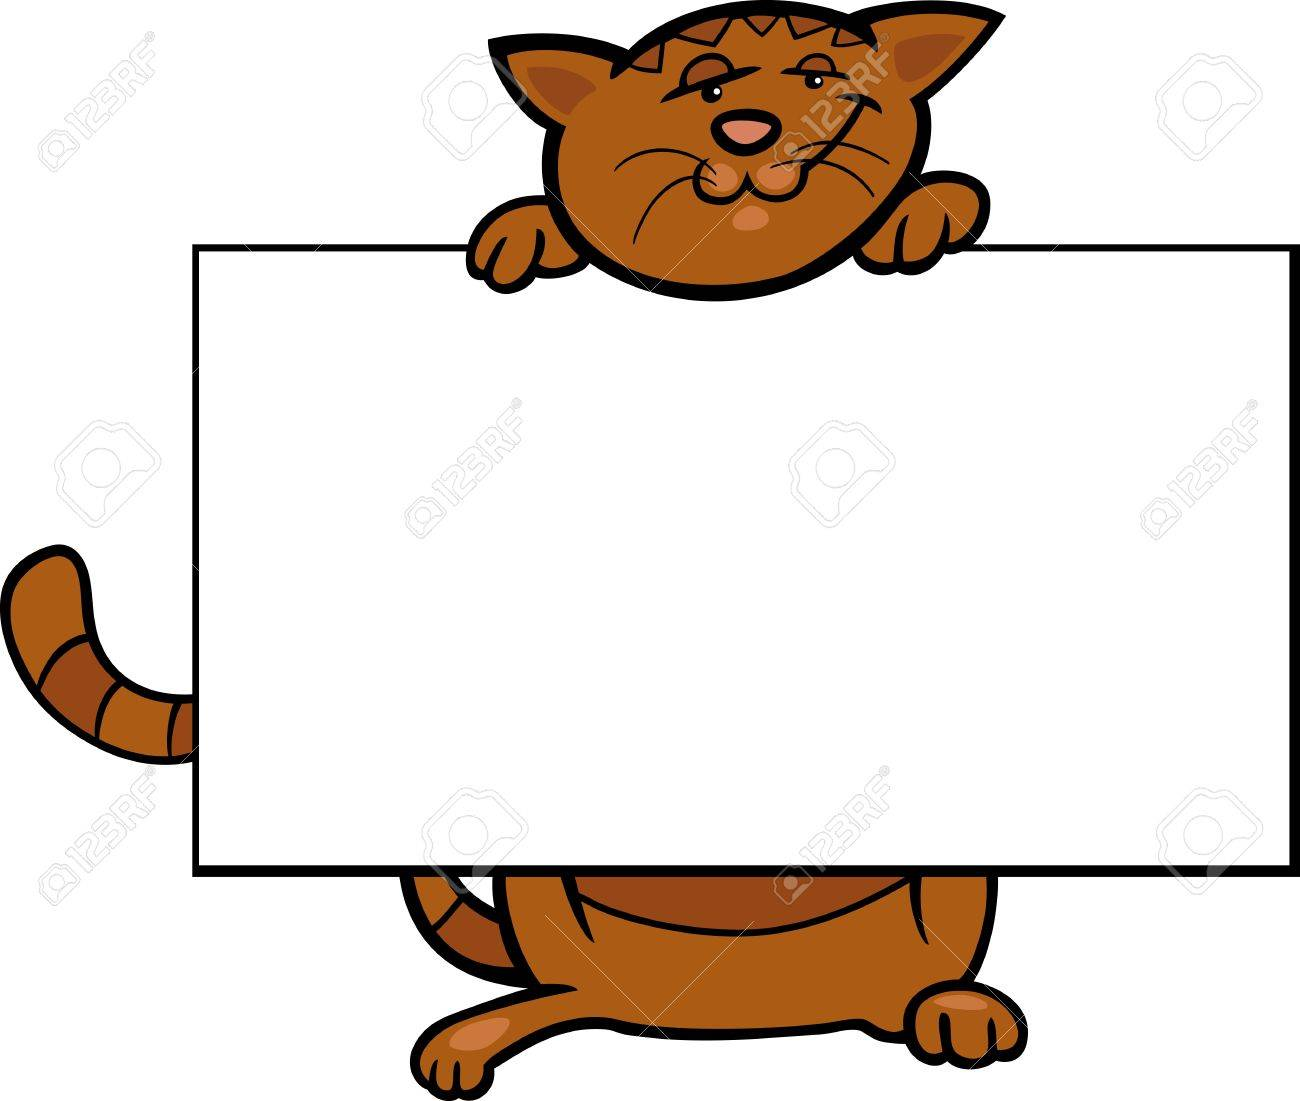 Cartoon Illustration of Funny Cat with White Card or Board Greeting or Business Card Design Isolated Stock Vector - 16789756